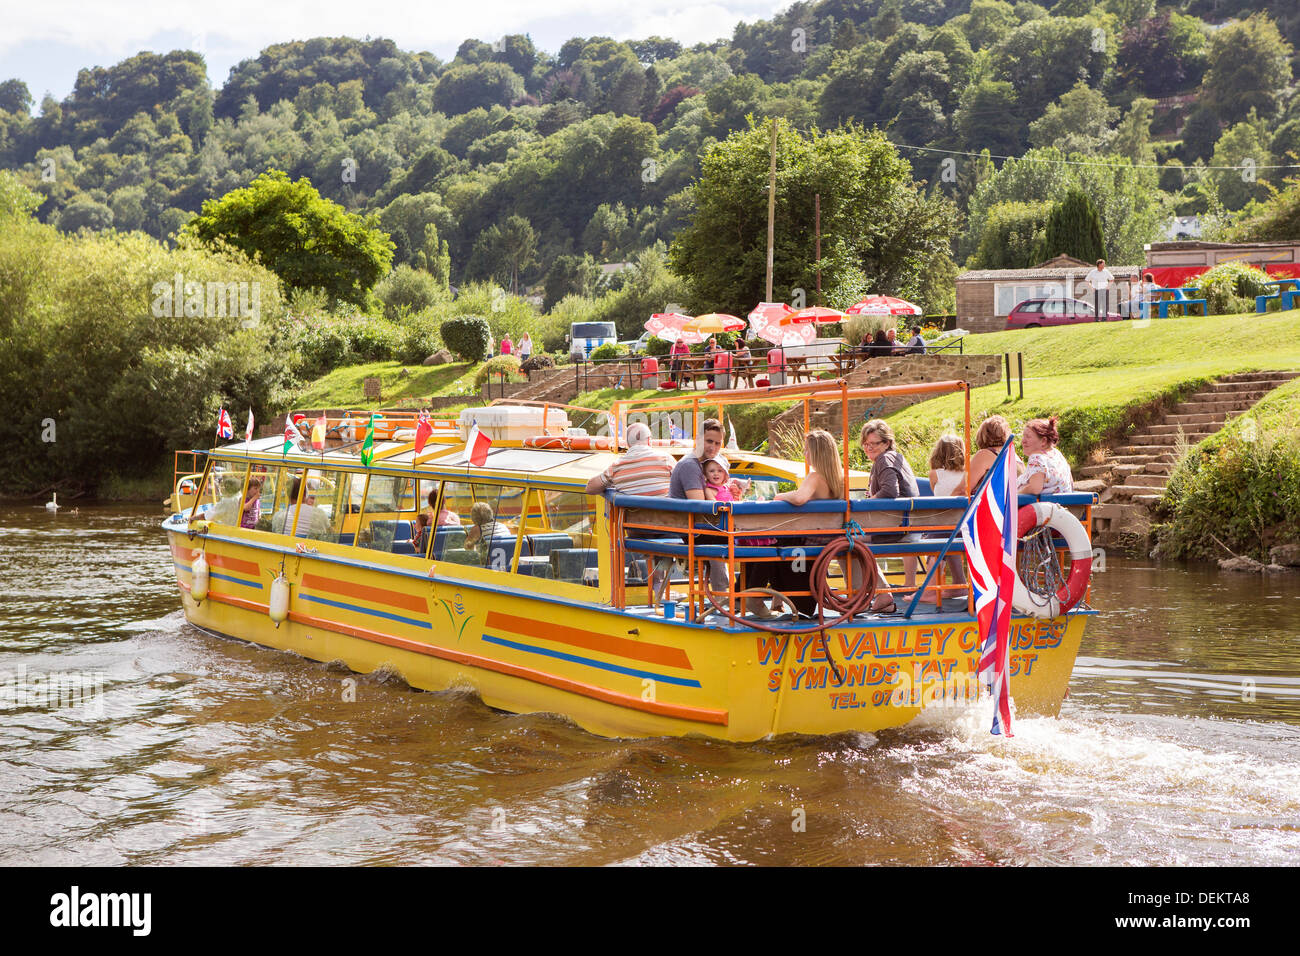 Gloucestershire tourist and travel forest of dean and Wye Valley River and Herefordshire Monmouthshire borders. River cruise. - Stock Image